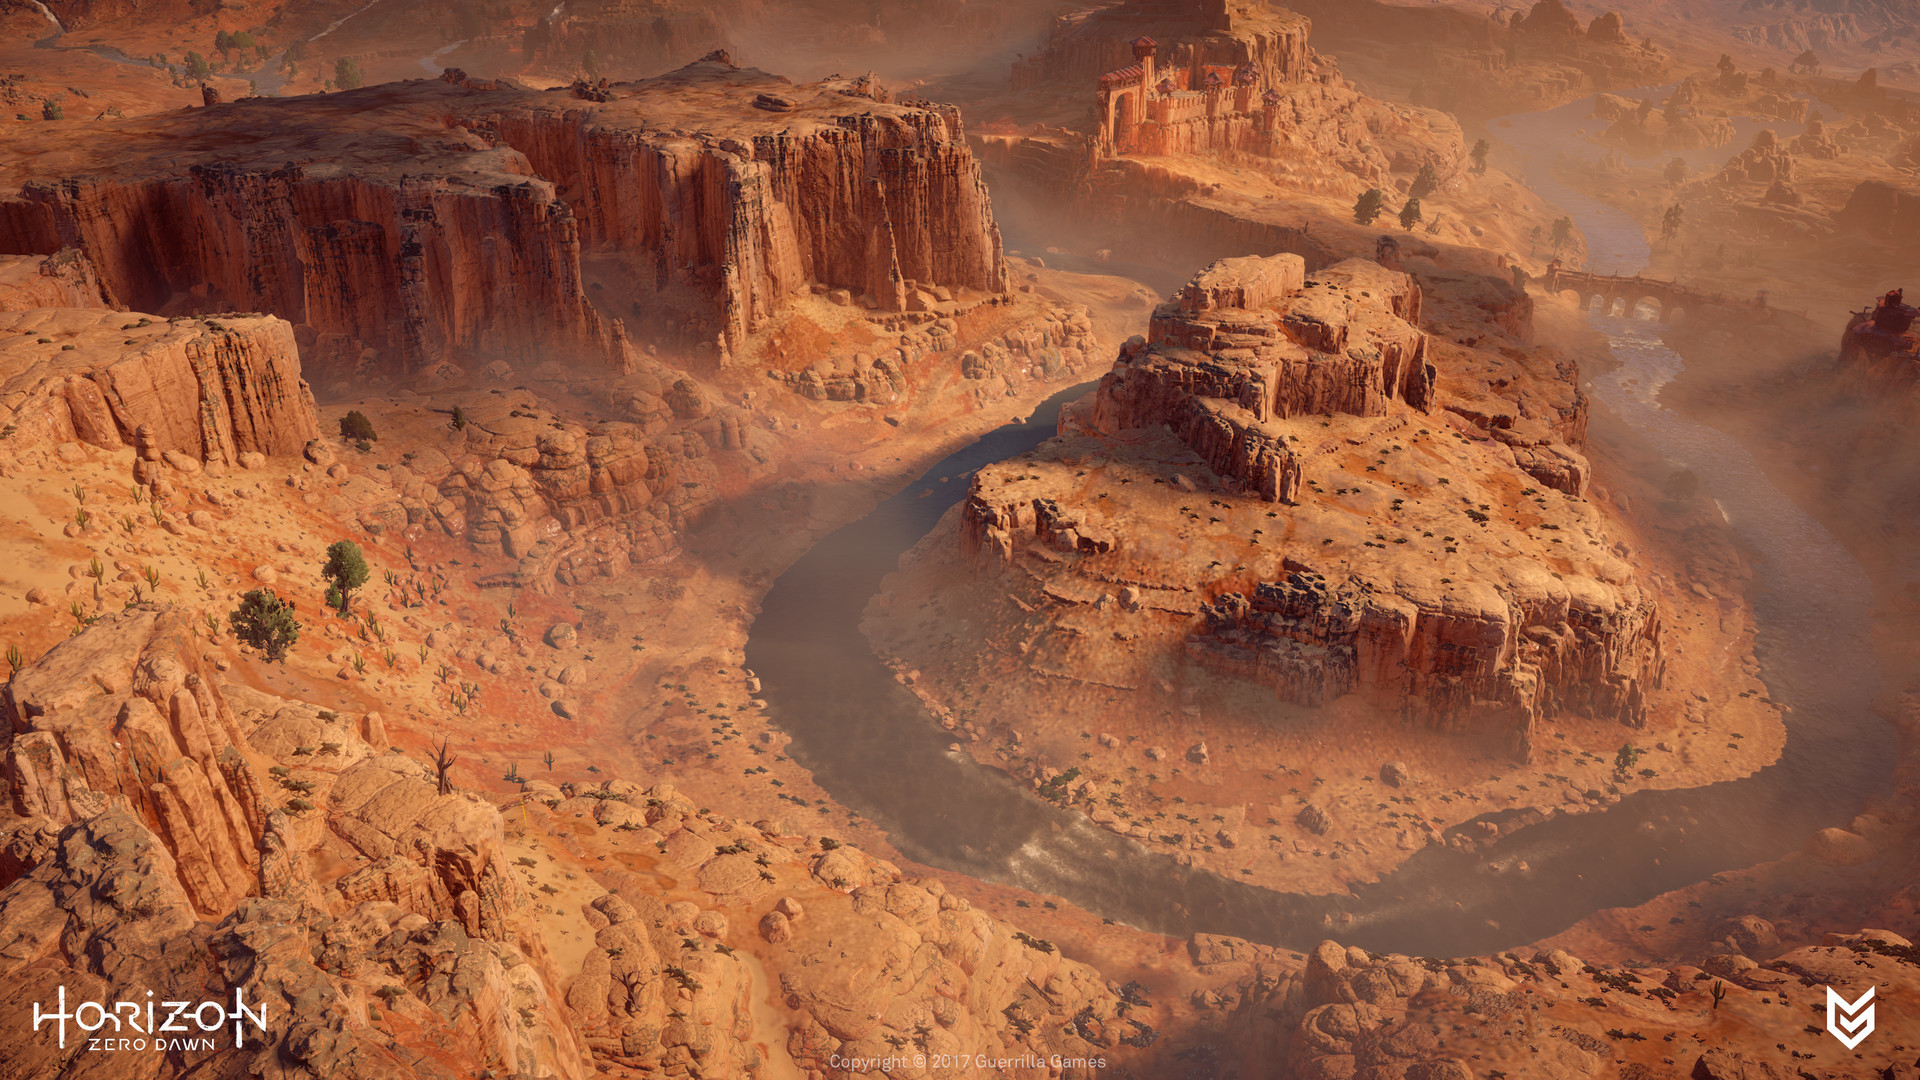 Lukas kolz gatelands canyon inspired by the colorado river